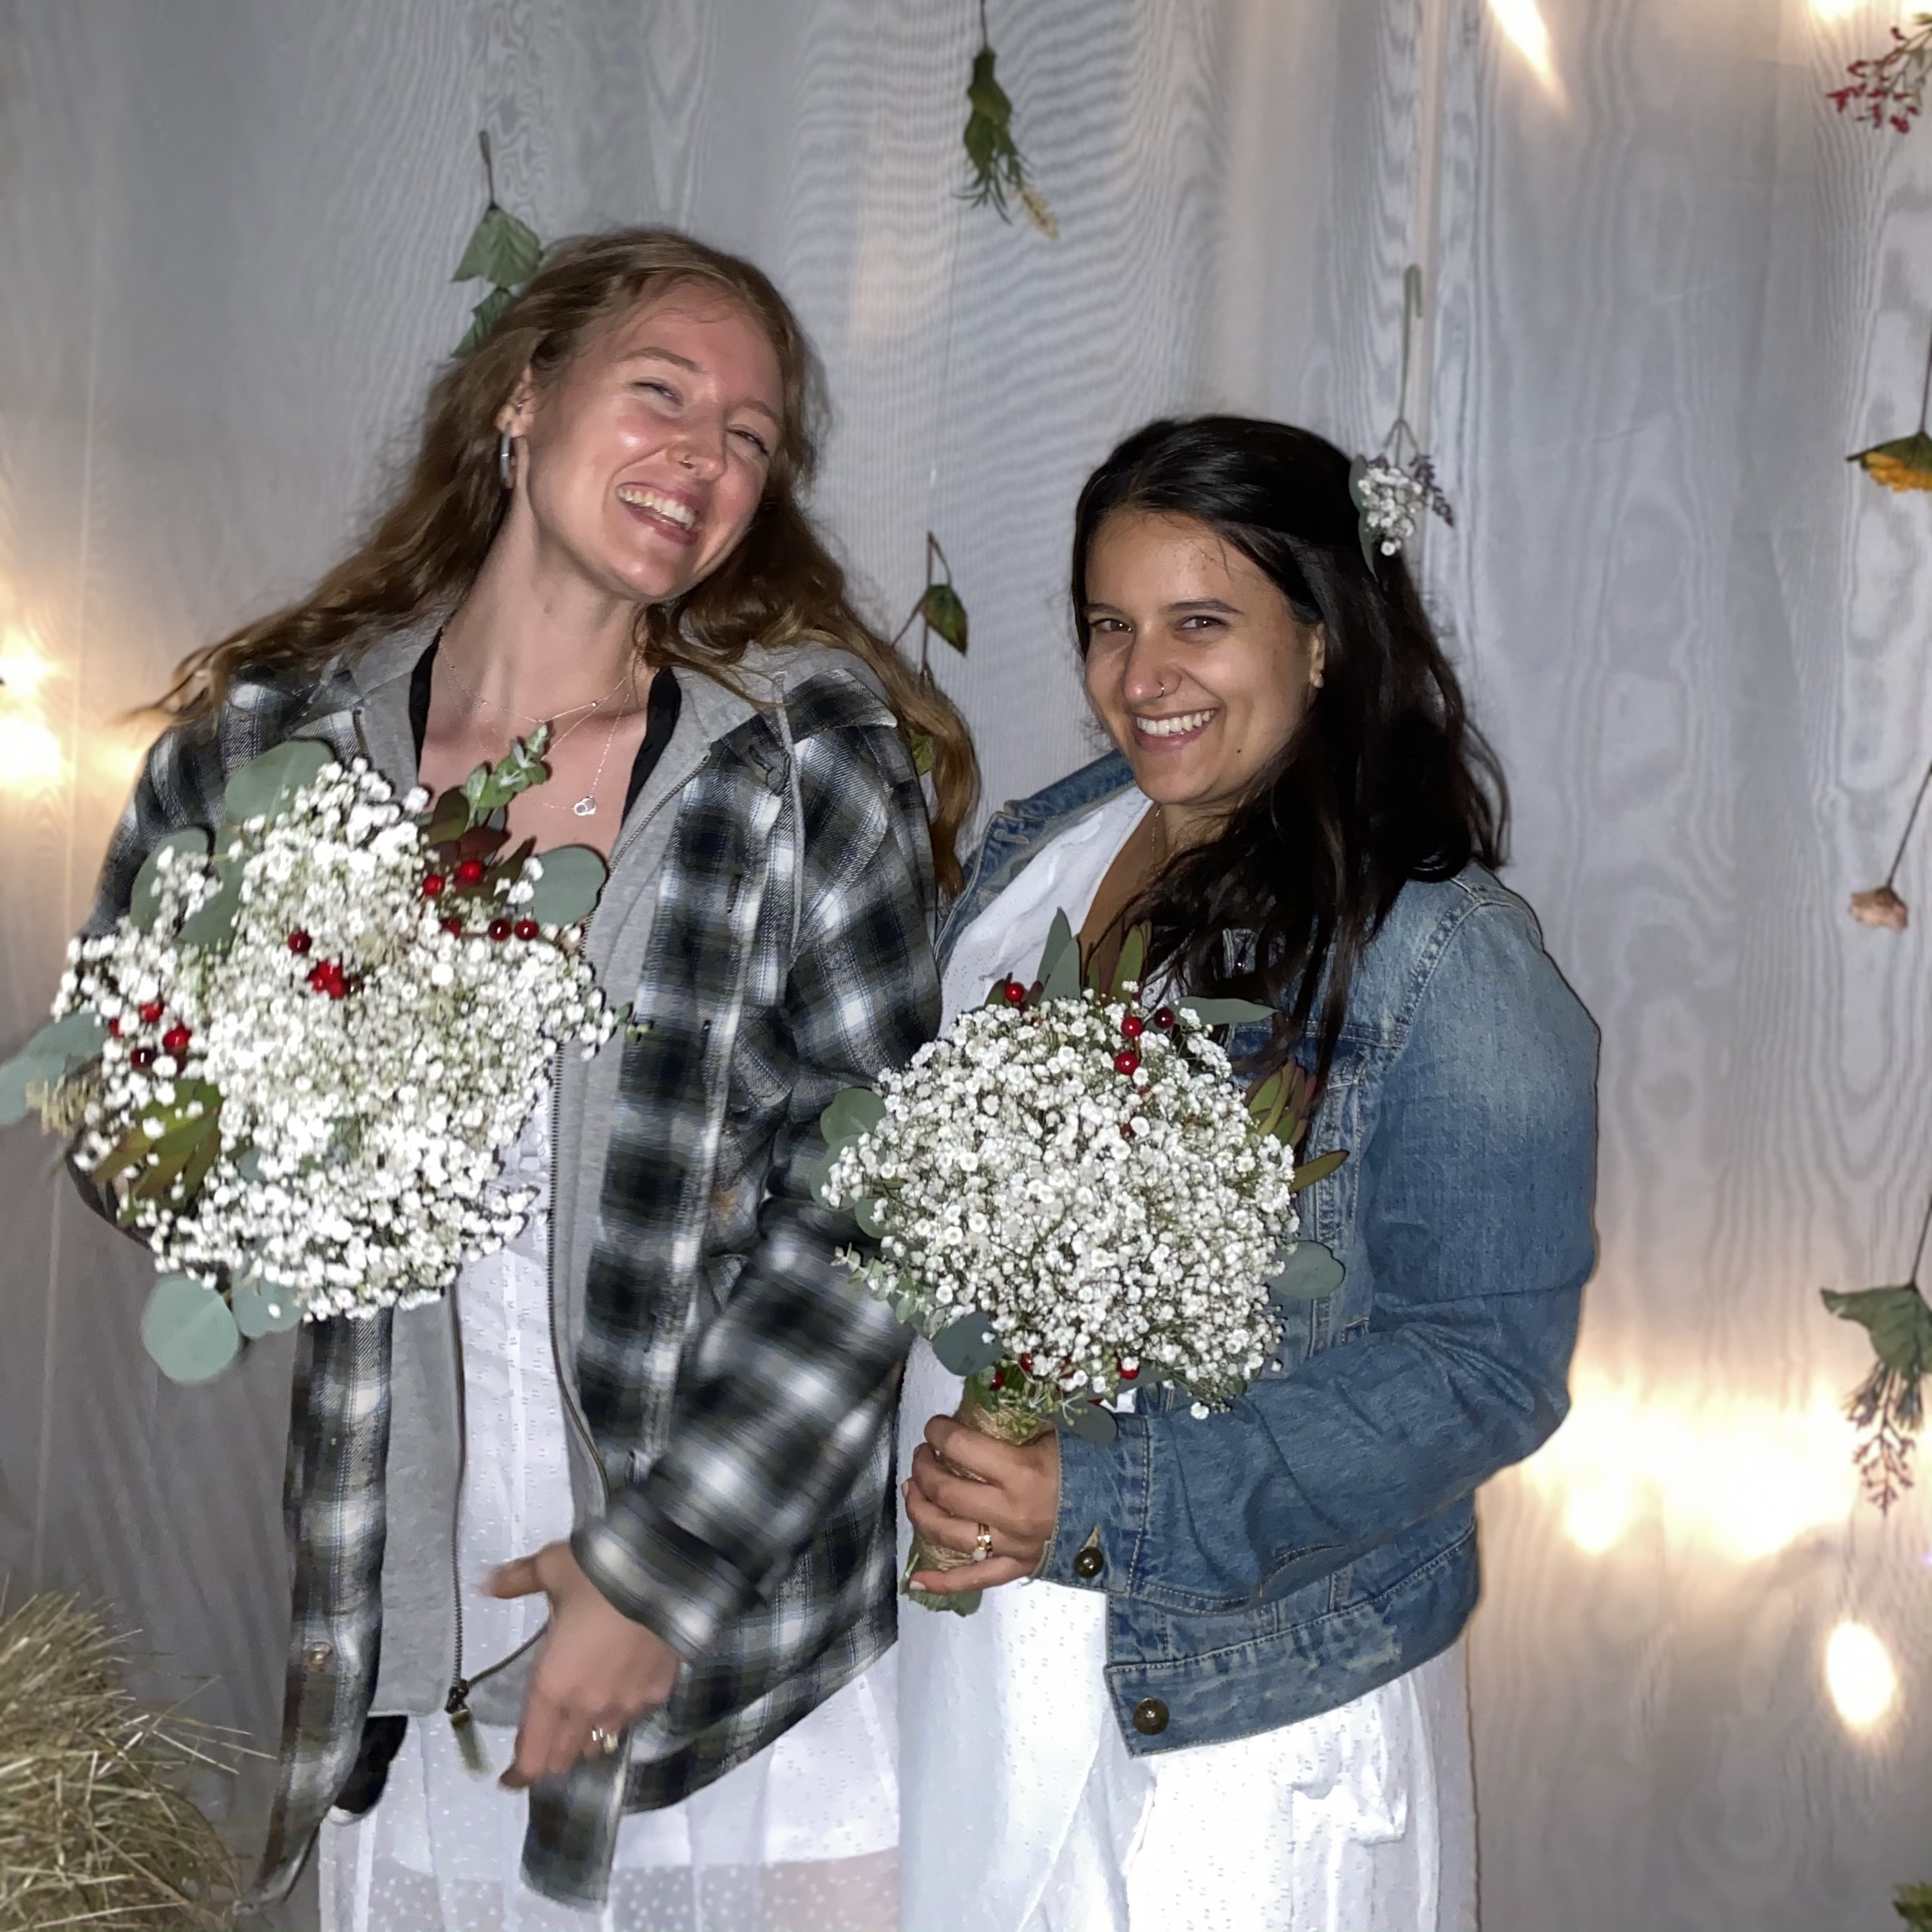 Marisa (left) and her wife (right) are grinning at the camera. They have jackets on over their wedding dresses, and are holding their bouquets.